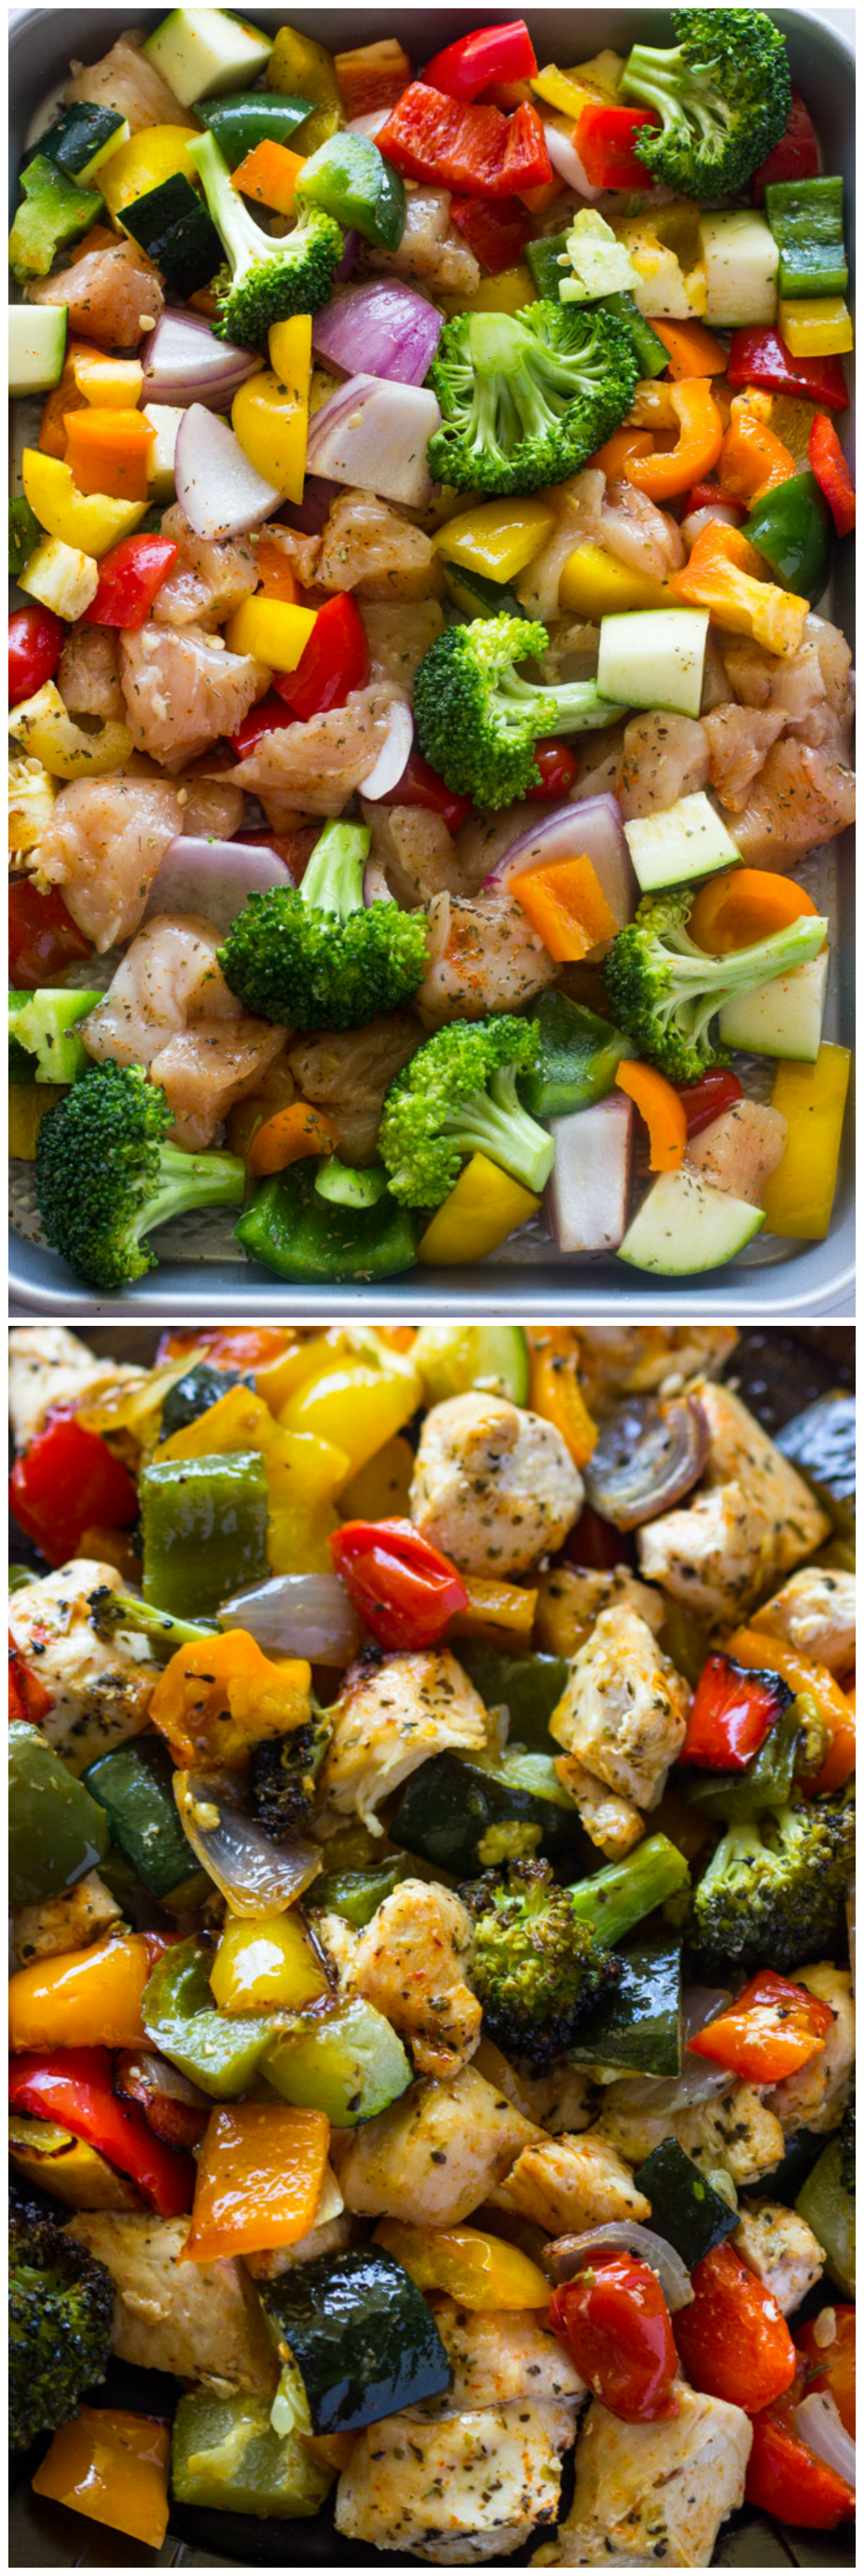 Watch Roasted Chicken and Vegetables video